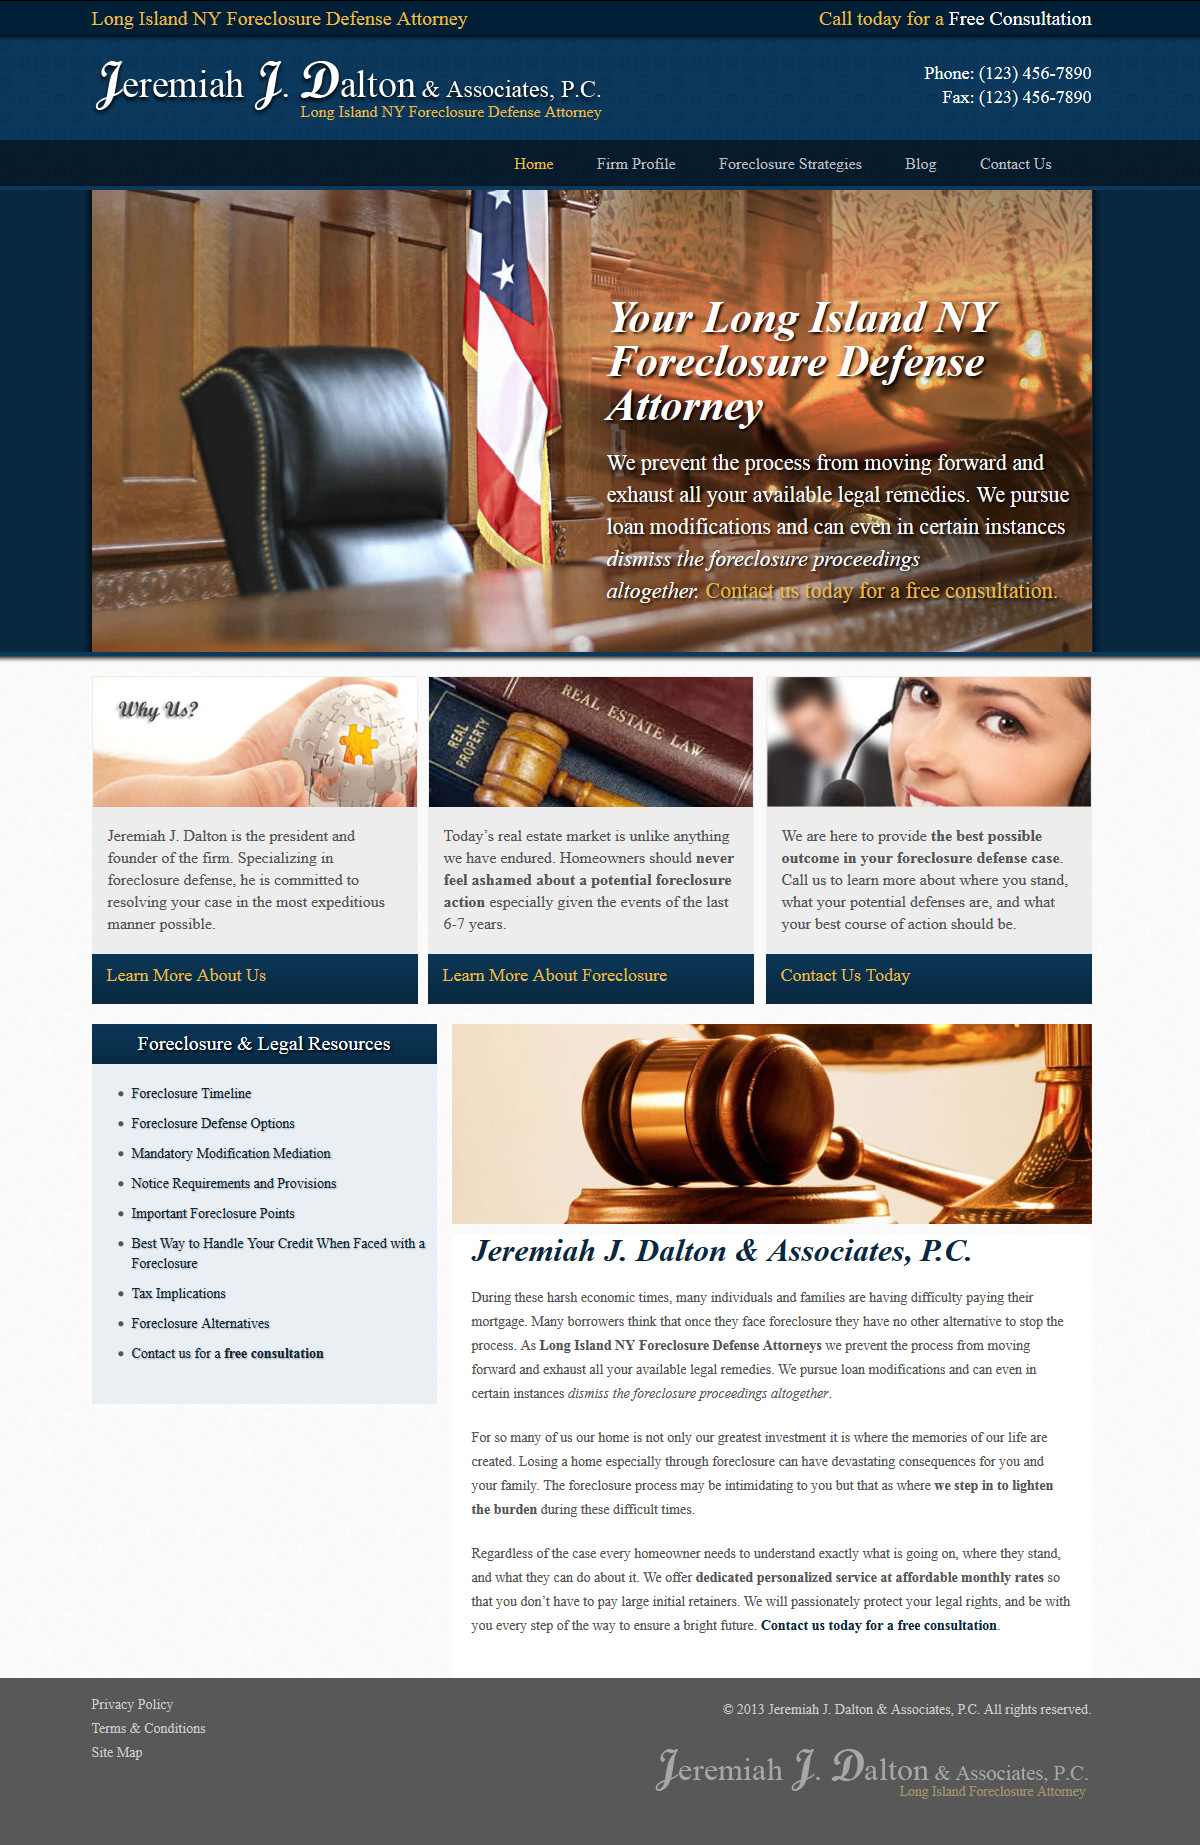 LI Foreclosure Attorney Website Design & Development